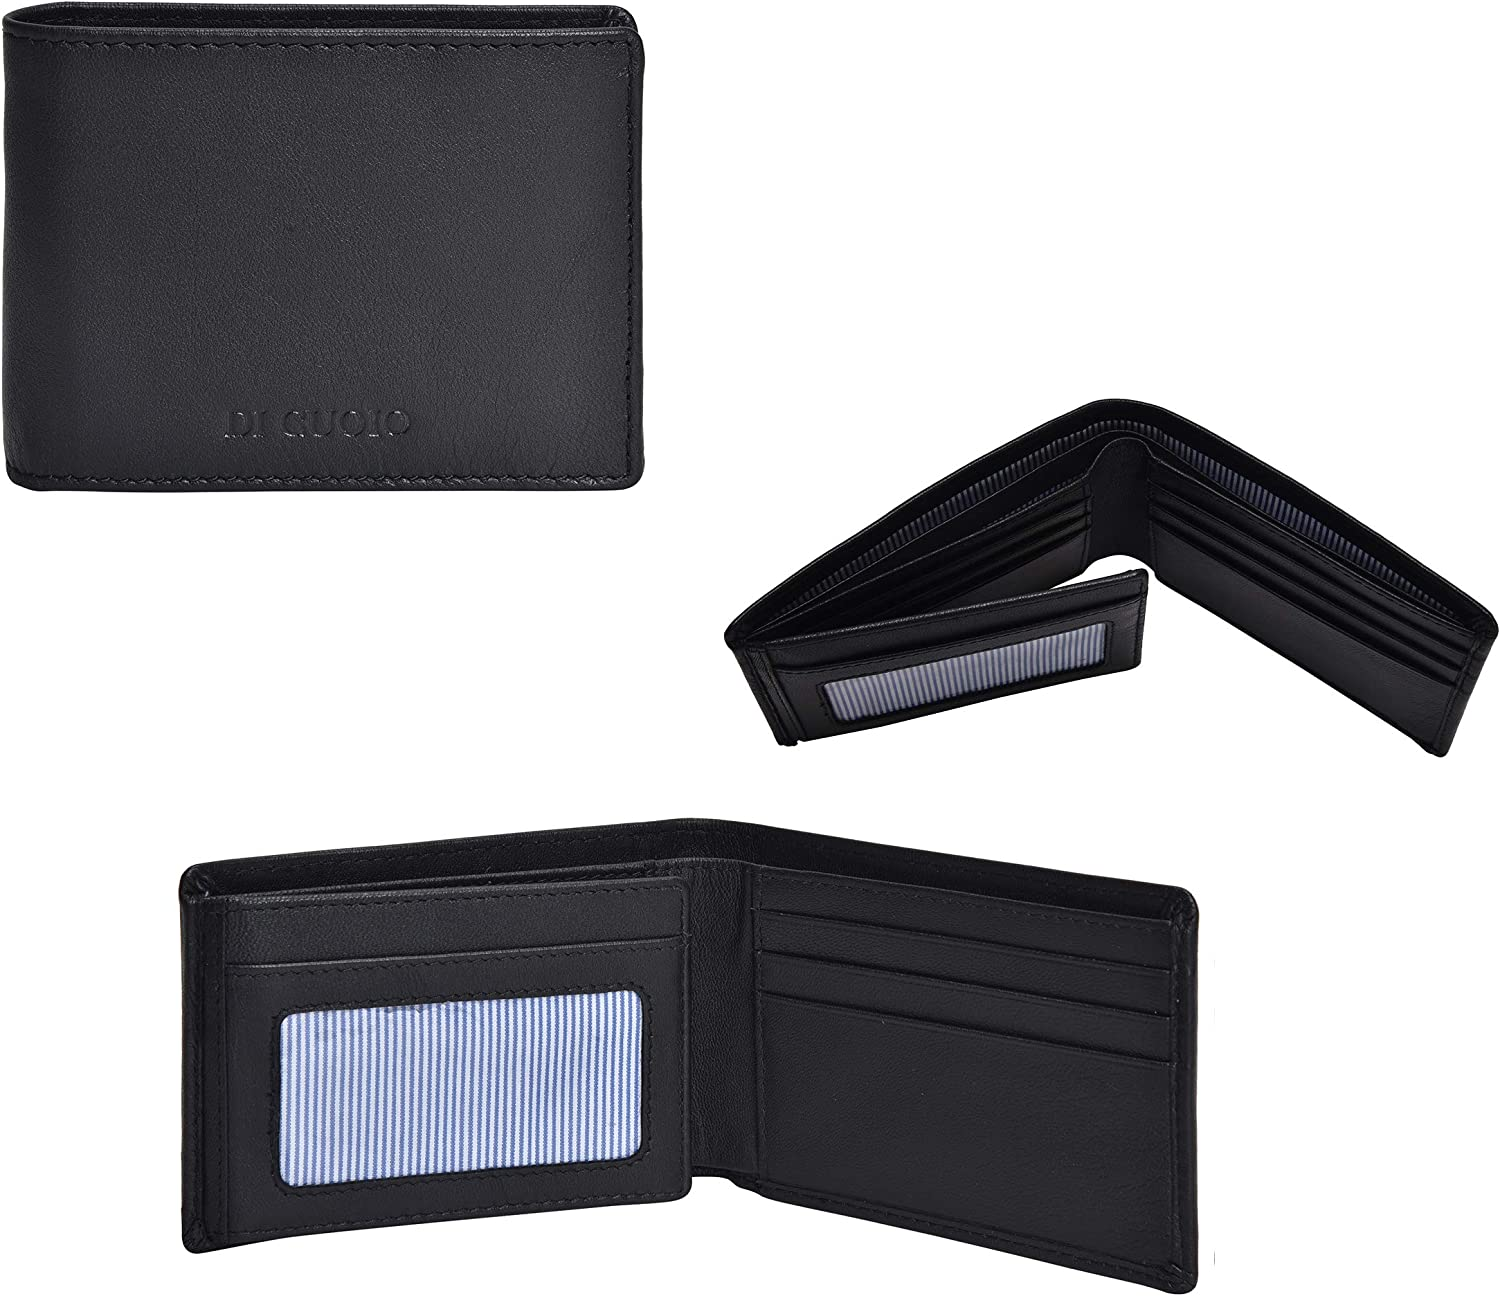 Di Cuoio Wallet for Men-Genuine Leather RFID Blocking Bifold Stylish Wallet